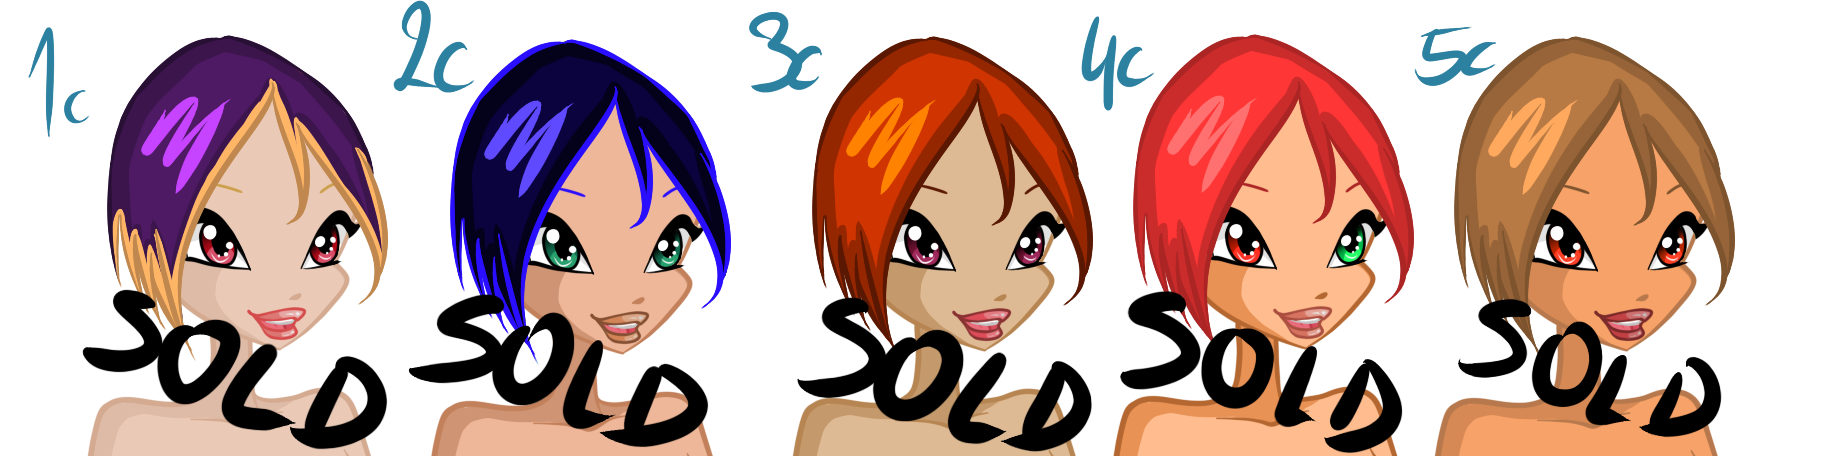 KGF's Winx Adoptables  - Color Palettes by KillerGirlFuria